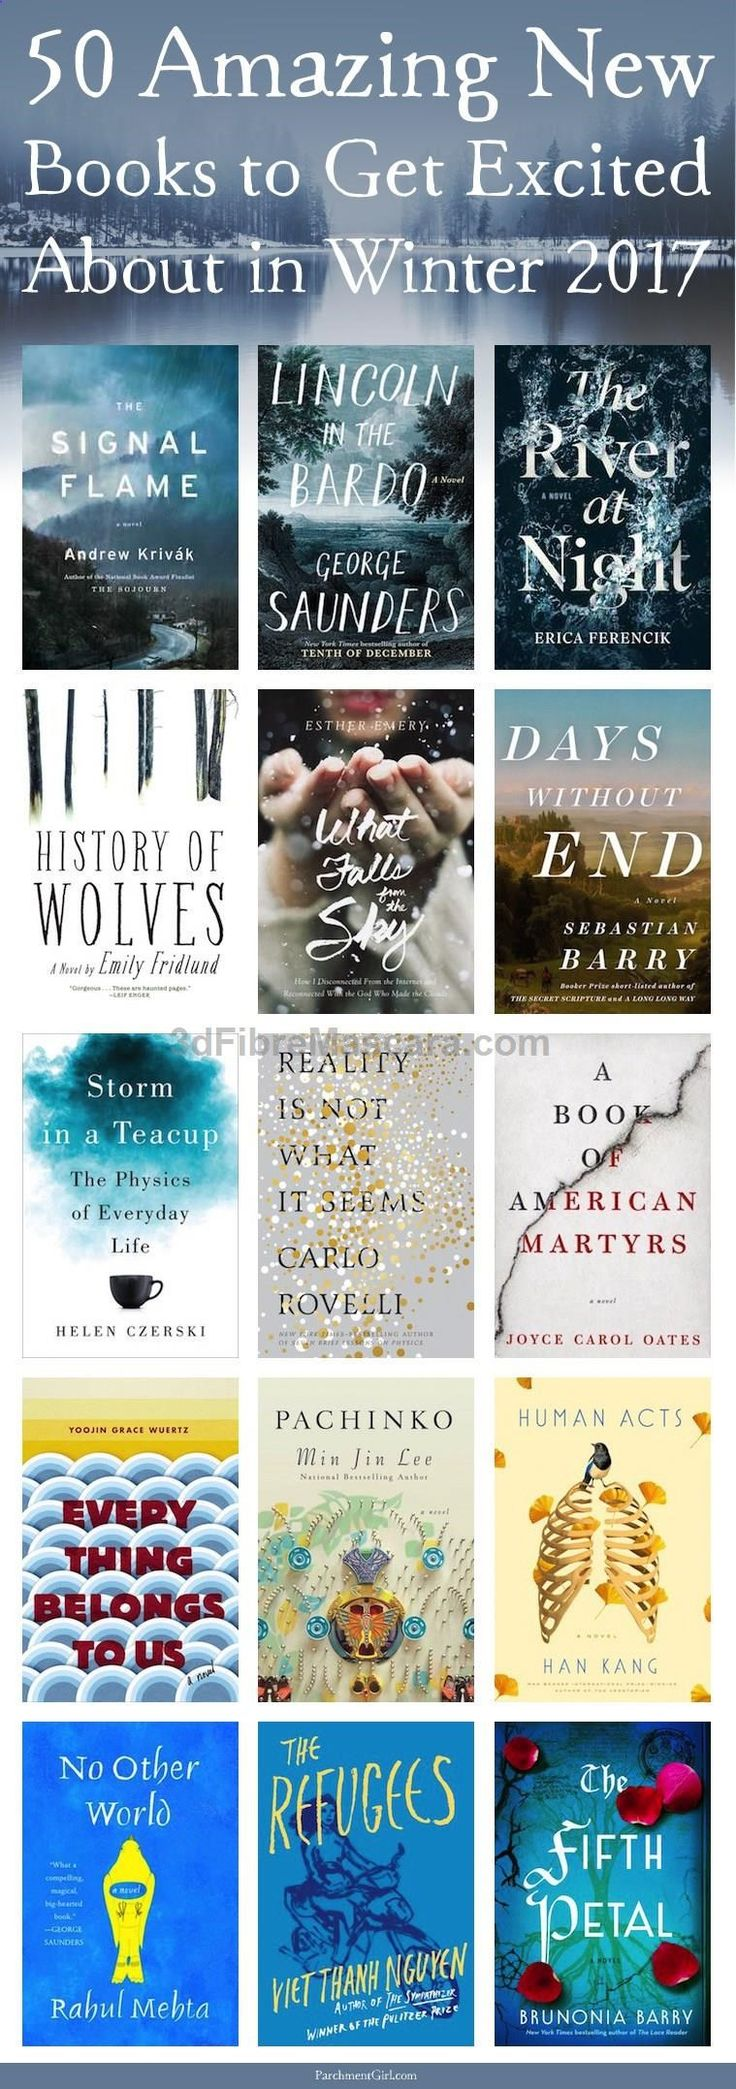 WINTER IS COMING... And so are these 50 amazing new books! Trust me, you wont have any trouble finding something to read this winter. #dogwalking #dogs #animals #outside #pets #petgifts #ilovemydog #loveanimals #petshop #dogsitter #beast #puppies #puppy #walkthedog #dogbirthday #pettoys #dogtoy #doglead #dogphotos #animalcare